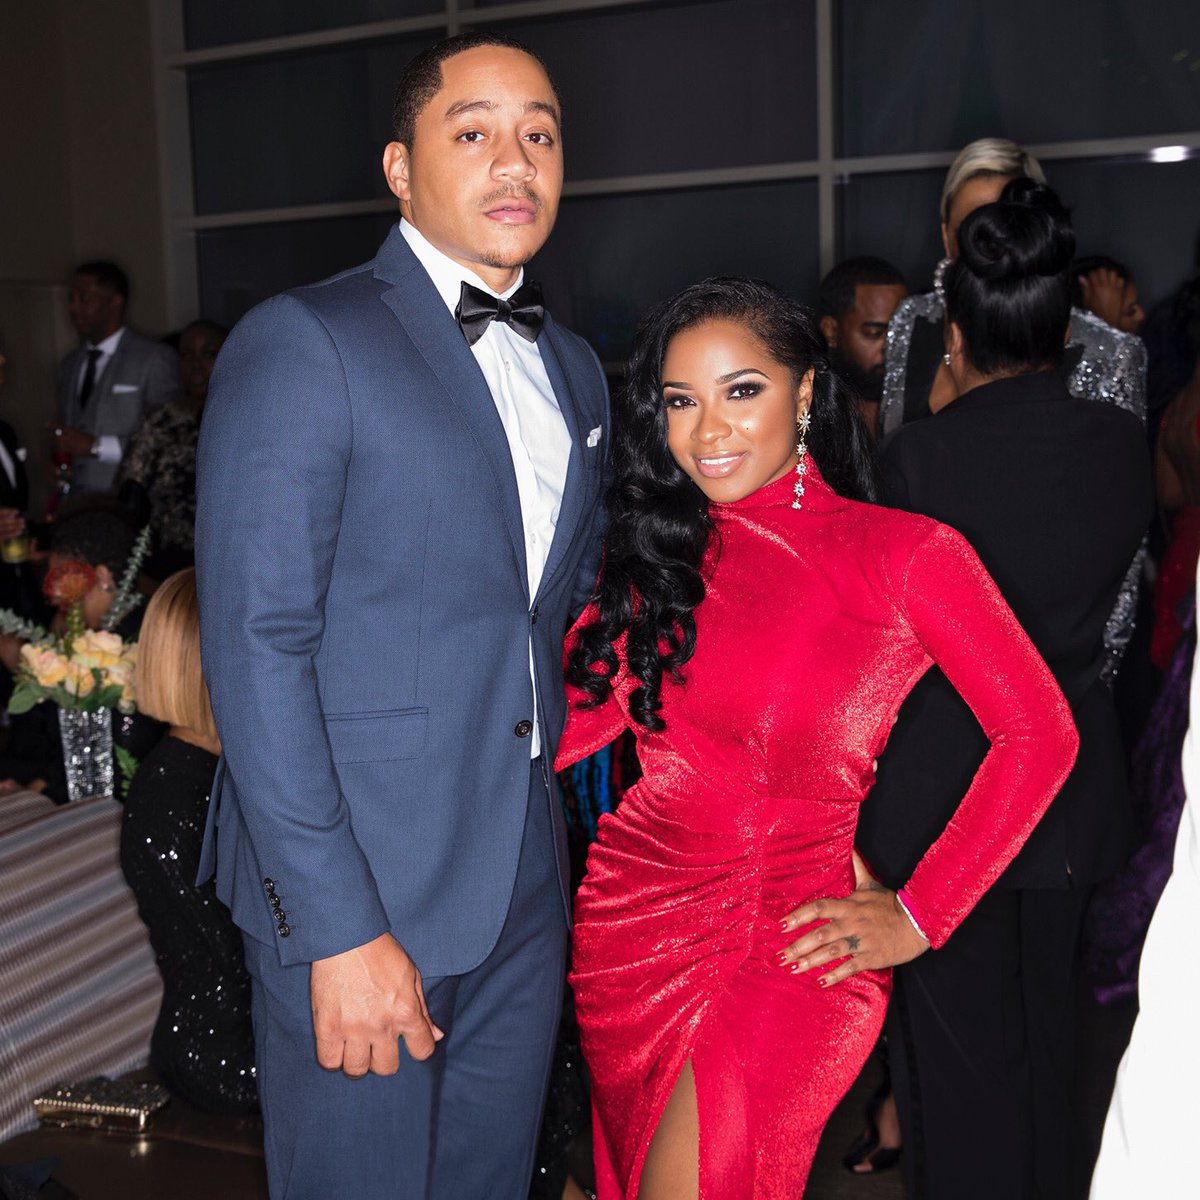 toya-johnsons-photos-of-her-baby-girl-reign-rushing-will-make-your-day